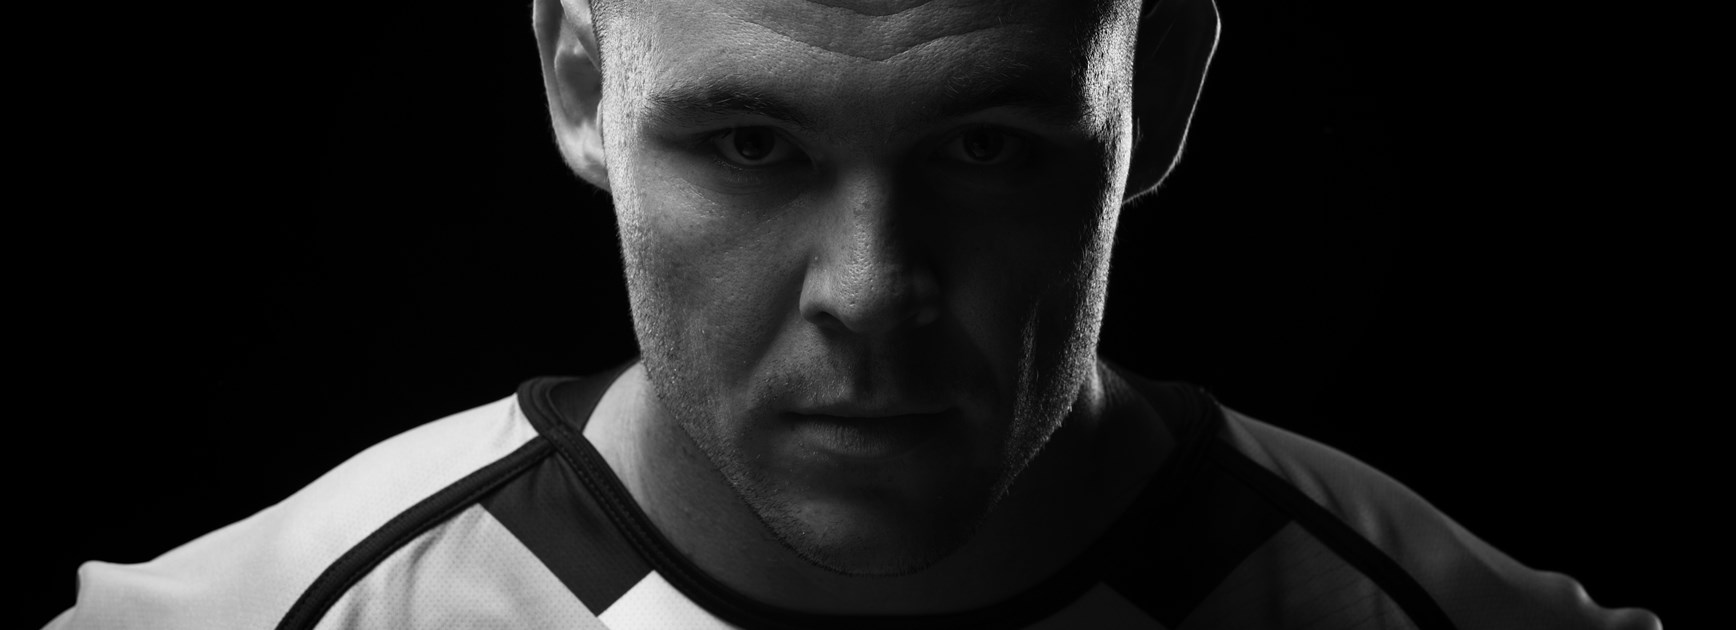 The demons that have haunted David Klemmer